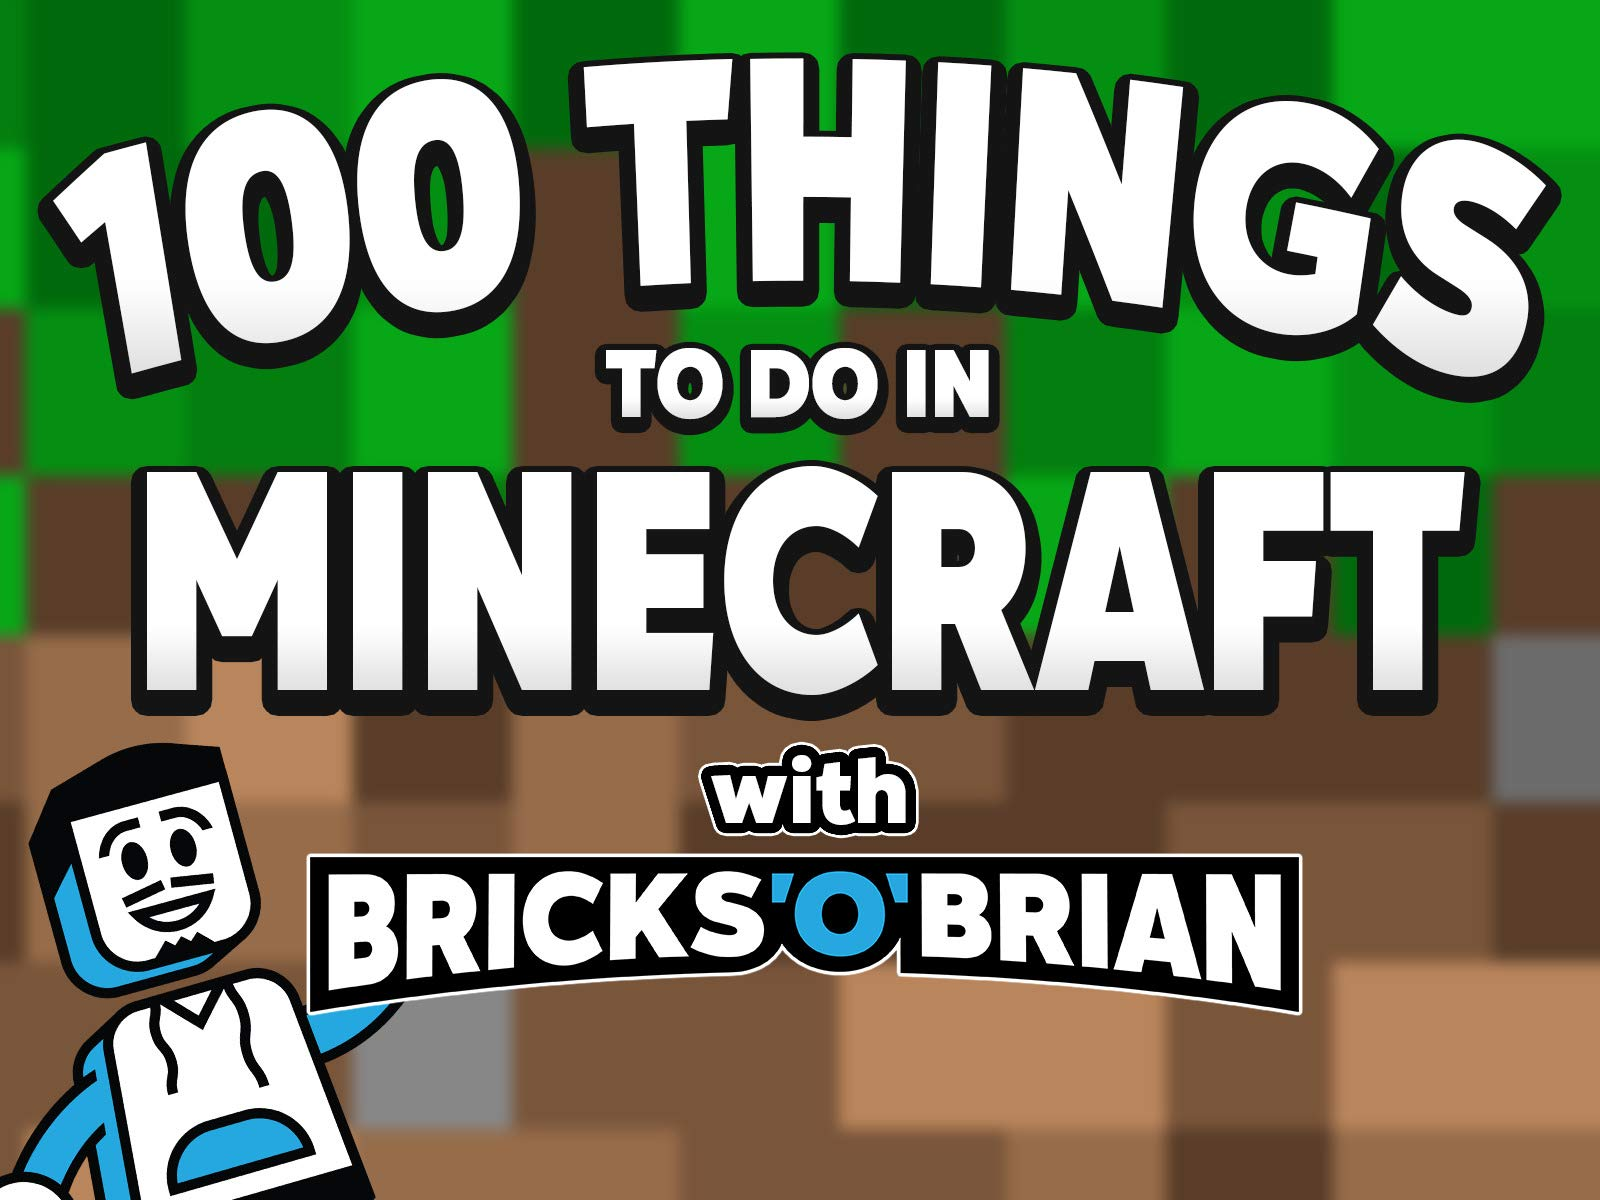 Clip: 100 Things To Do in Minecraft with Bricks 'O' Brian! on Amazon Prime Video UK